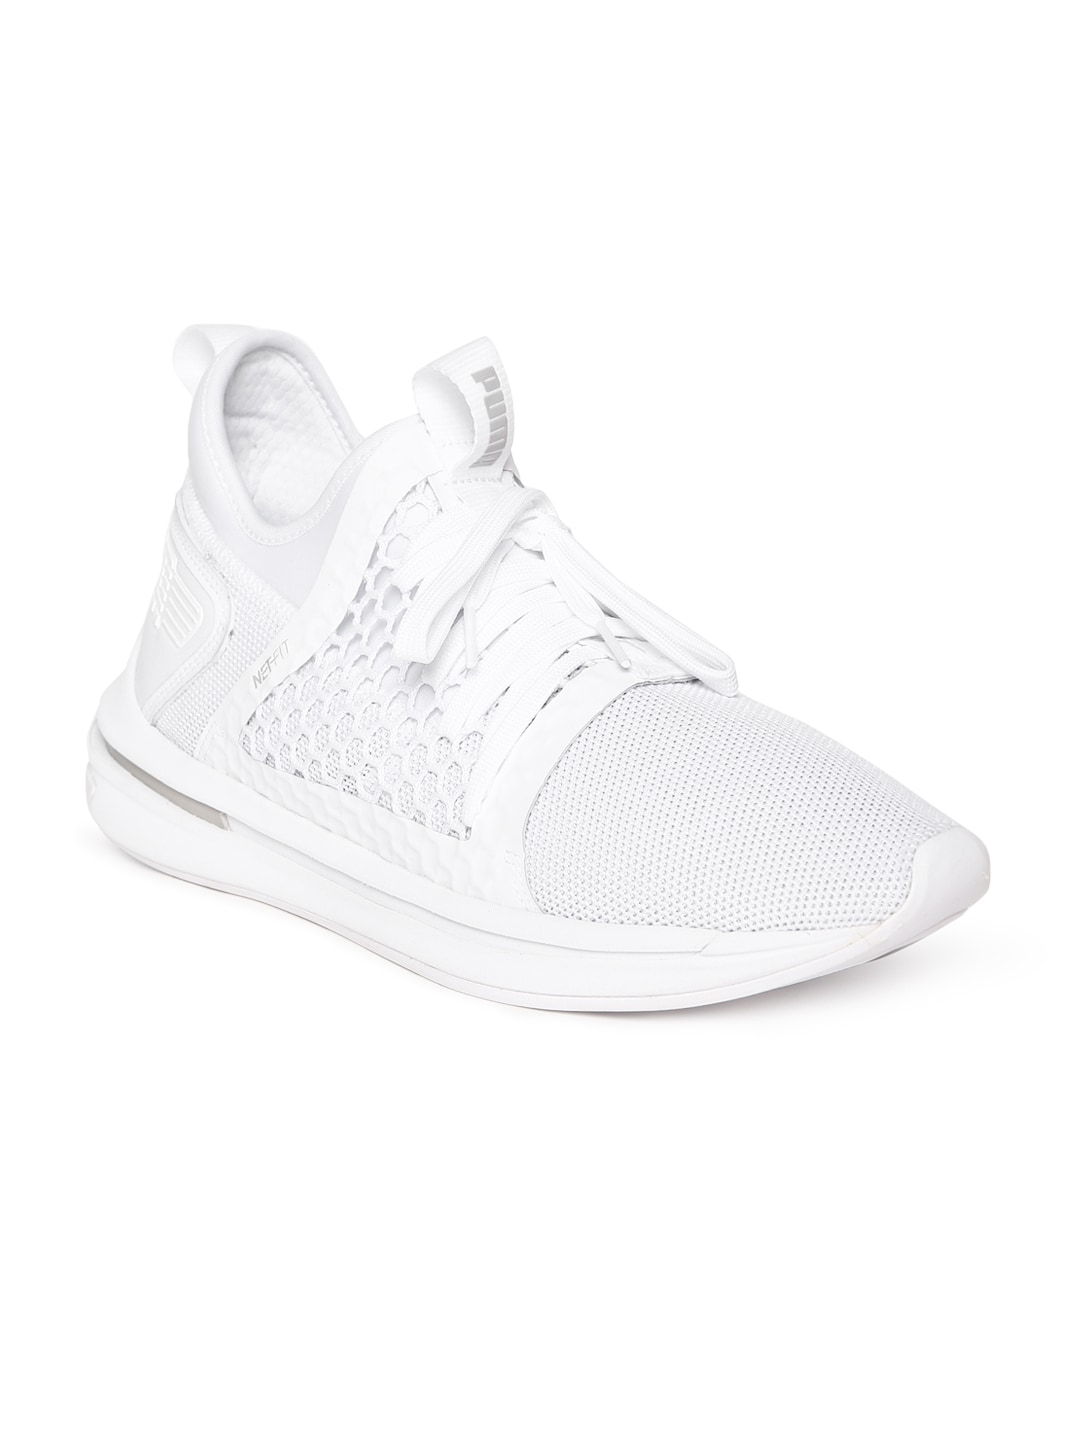 Puma Men White Mesh IGNITE Limitless SR NETFIT Mid-Top Running Shoes 93274b830